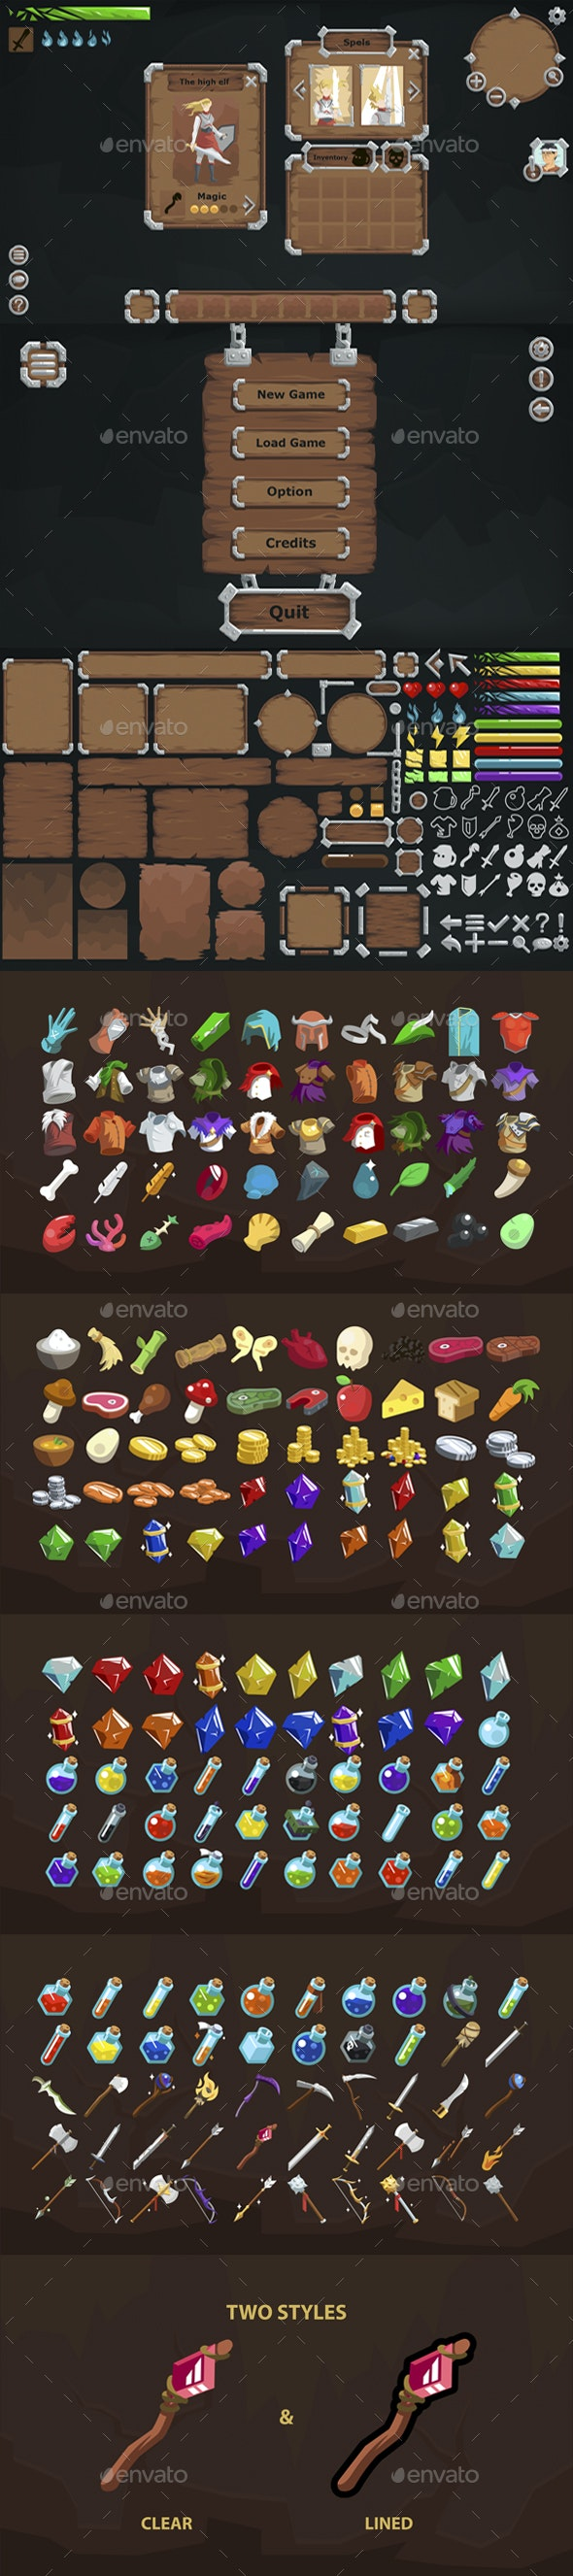 Shiny Stone Graphic User Interface - User Interfaces Game Assets